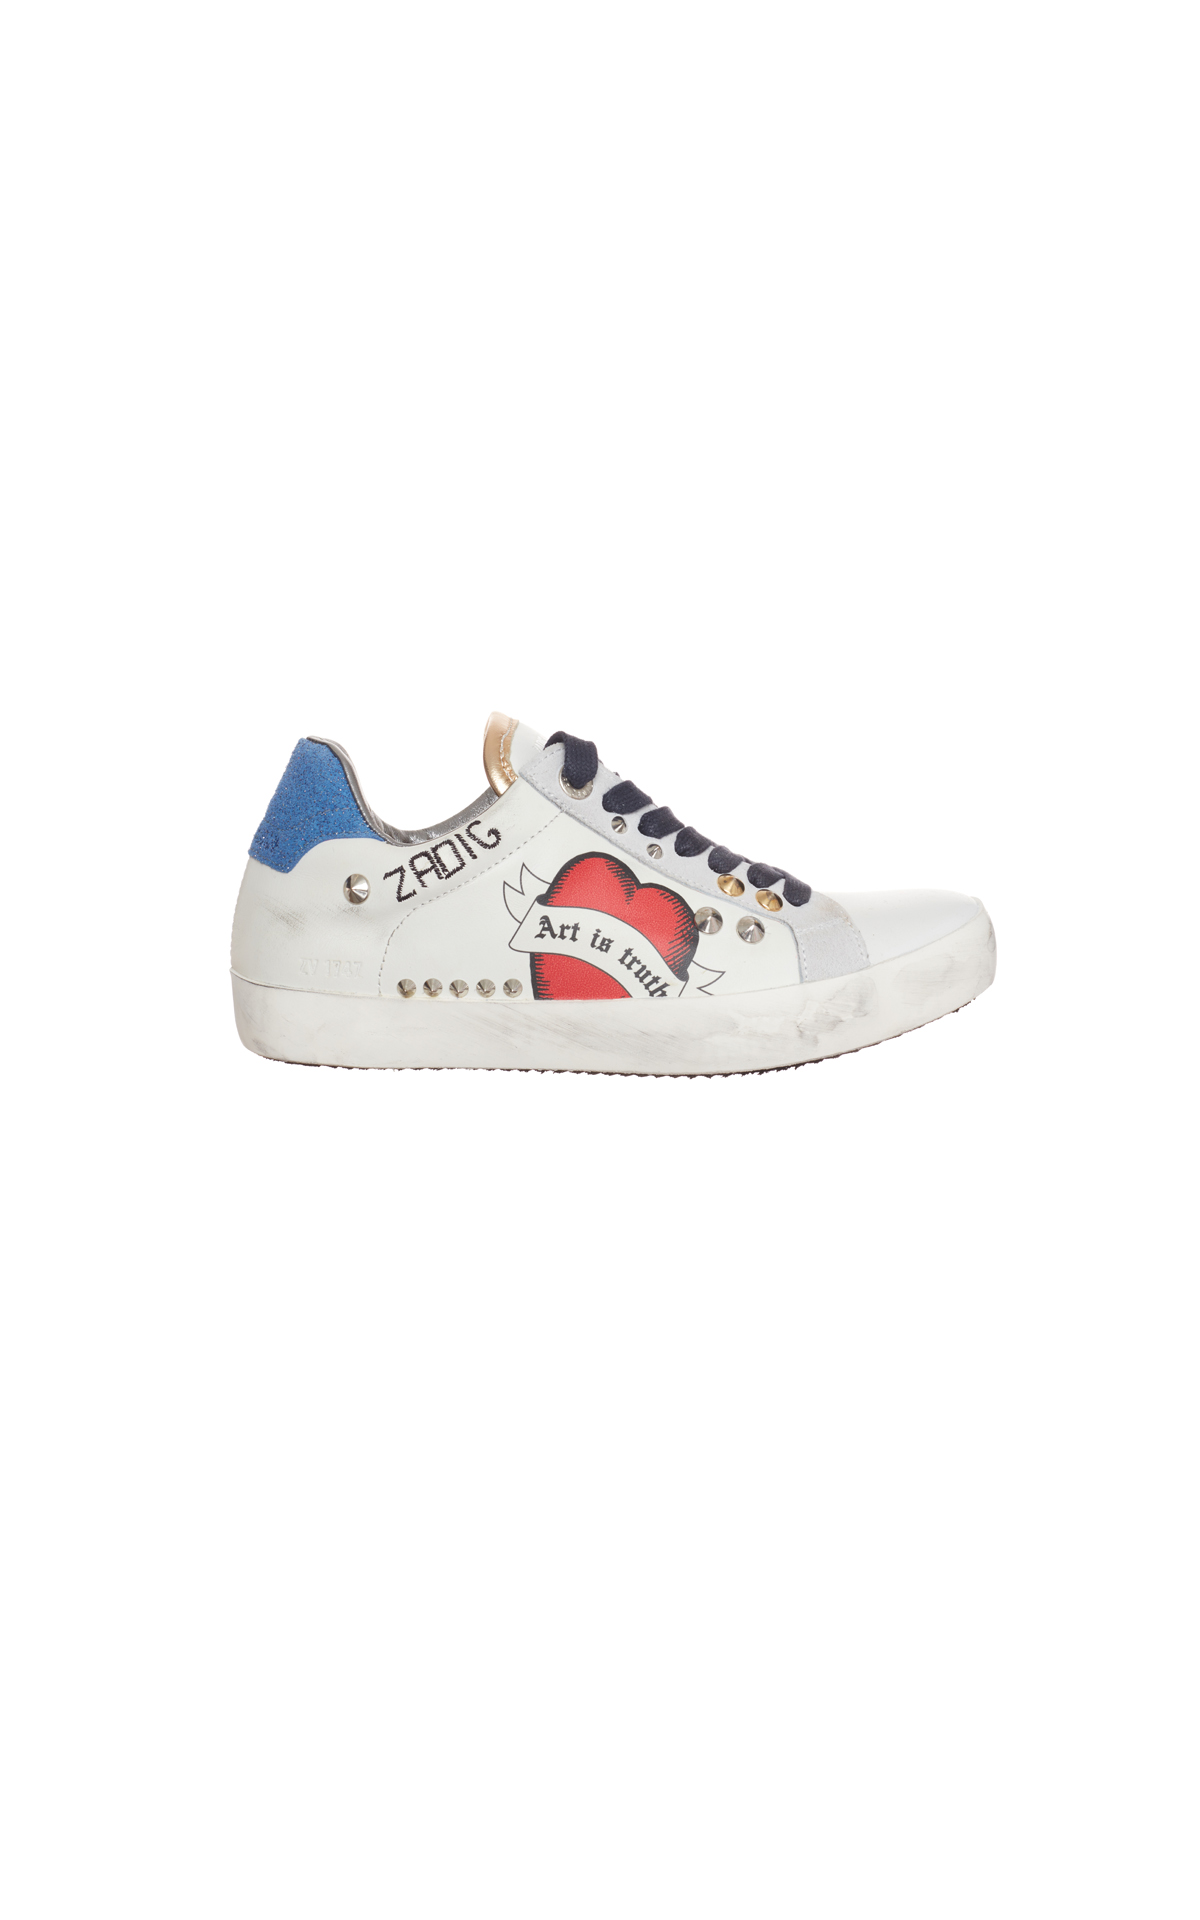 Zadig & Voltaire Art is truth sneakers from Bicester Village